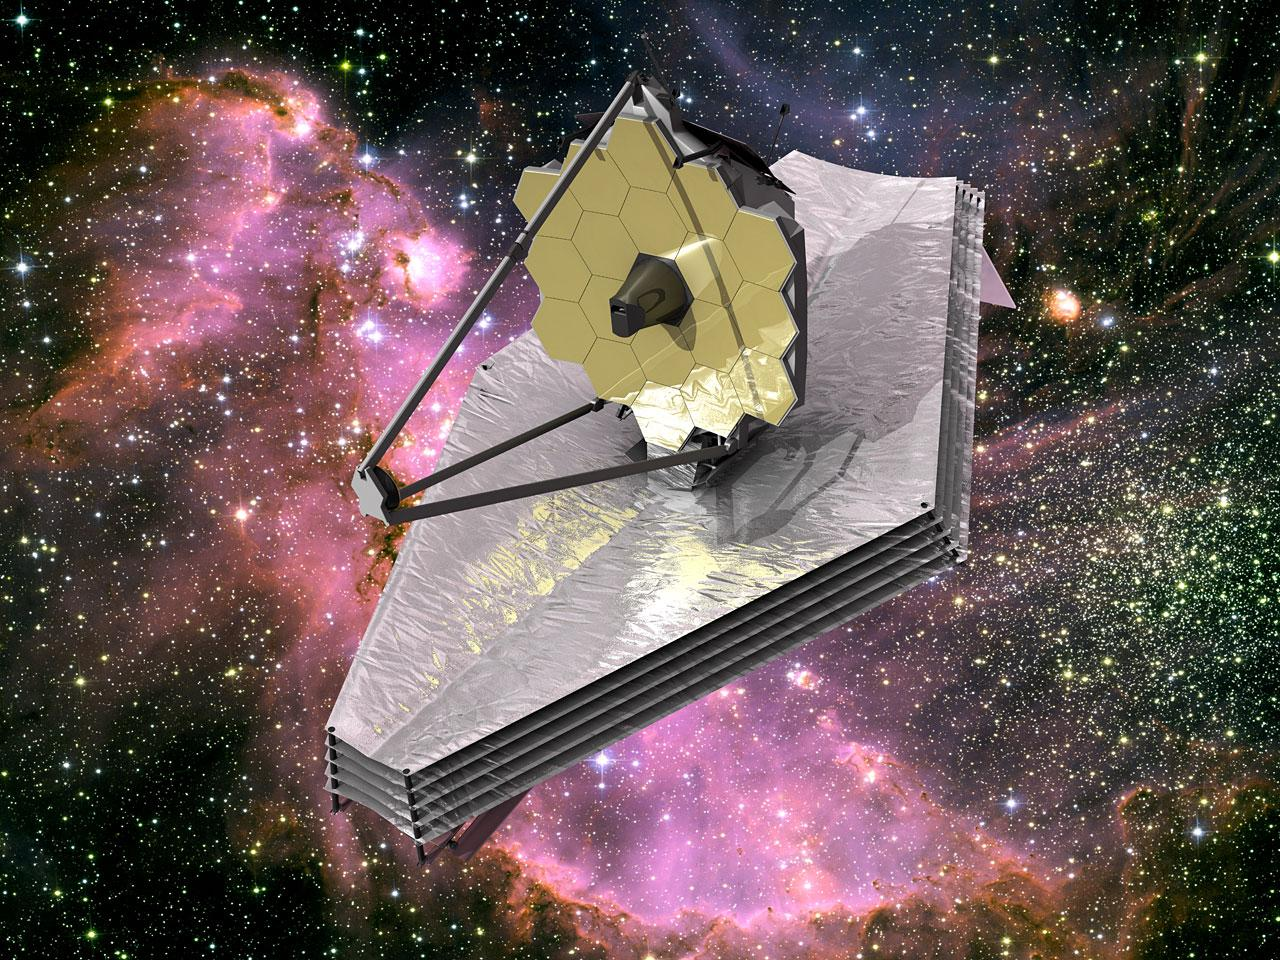 The James Webb Space Telescope will operate from the L2 Earth-Sun point (Image: NASA)